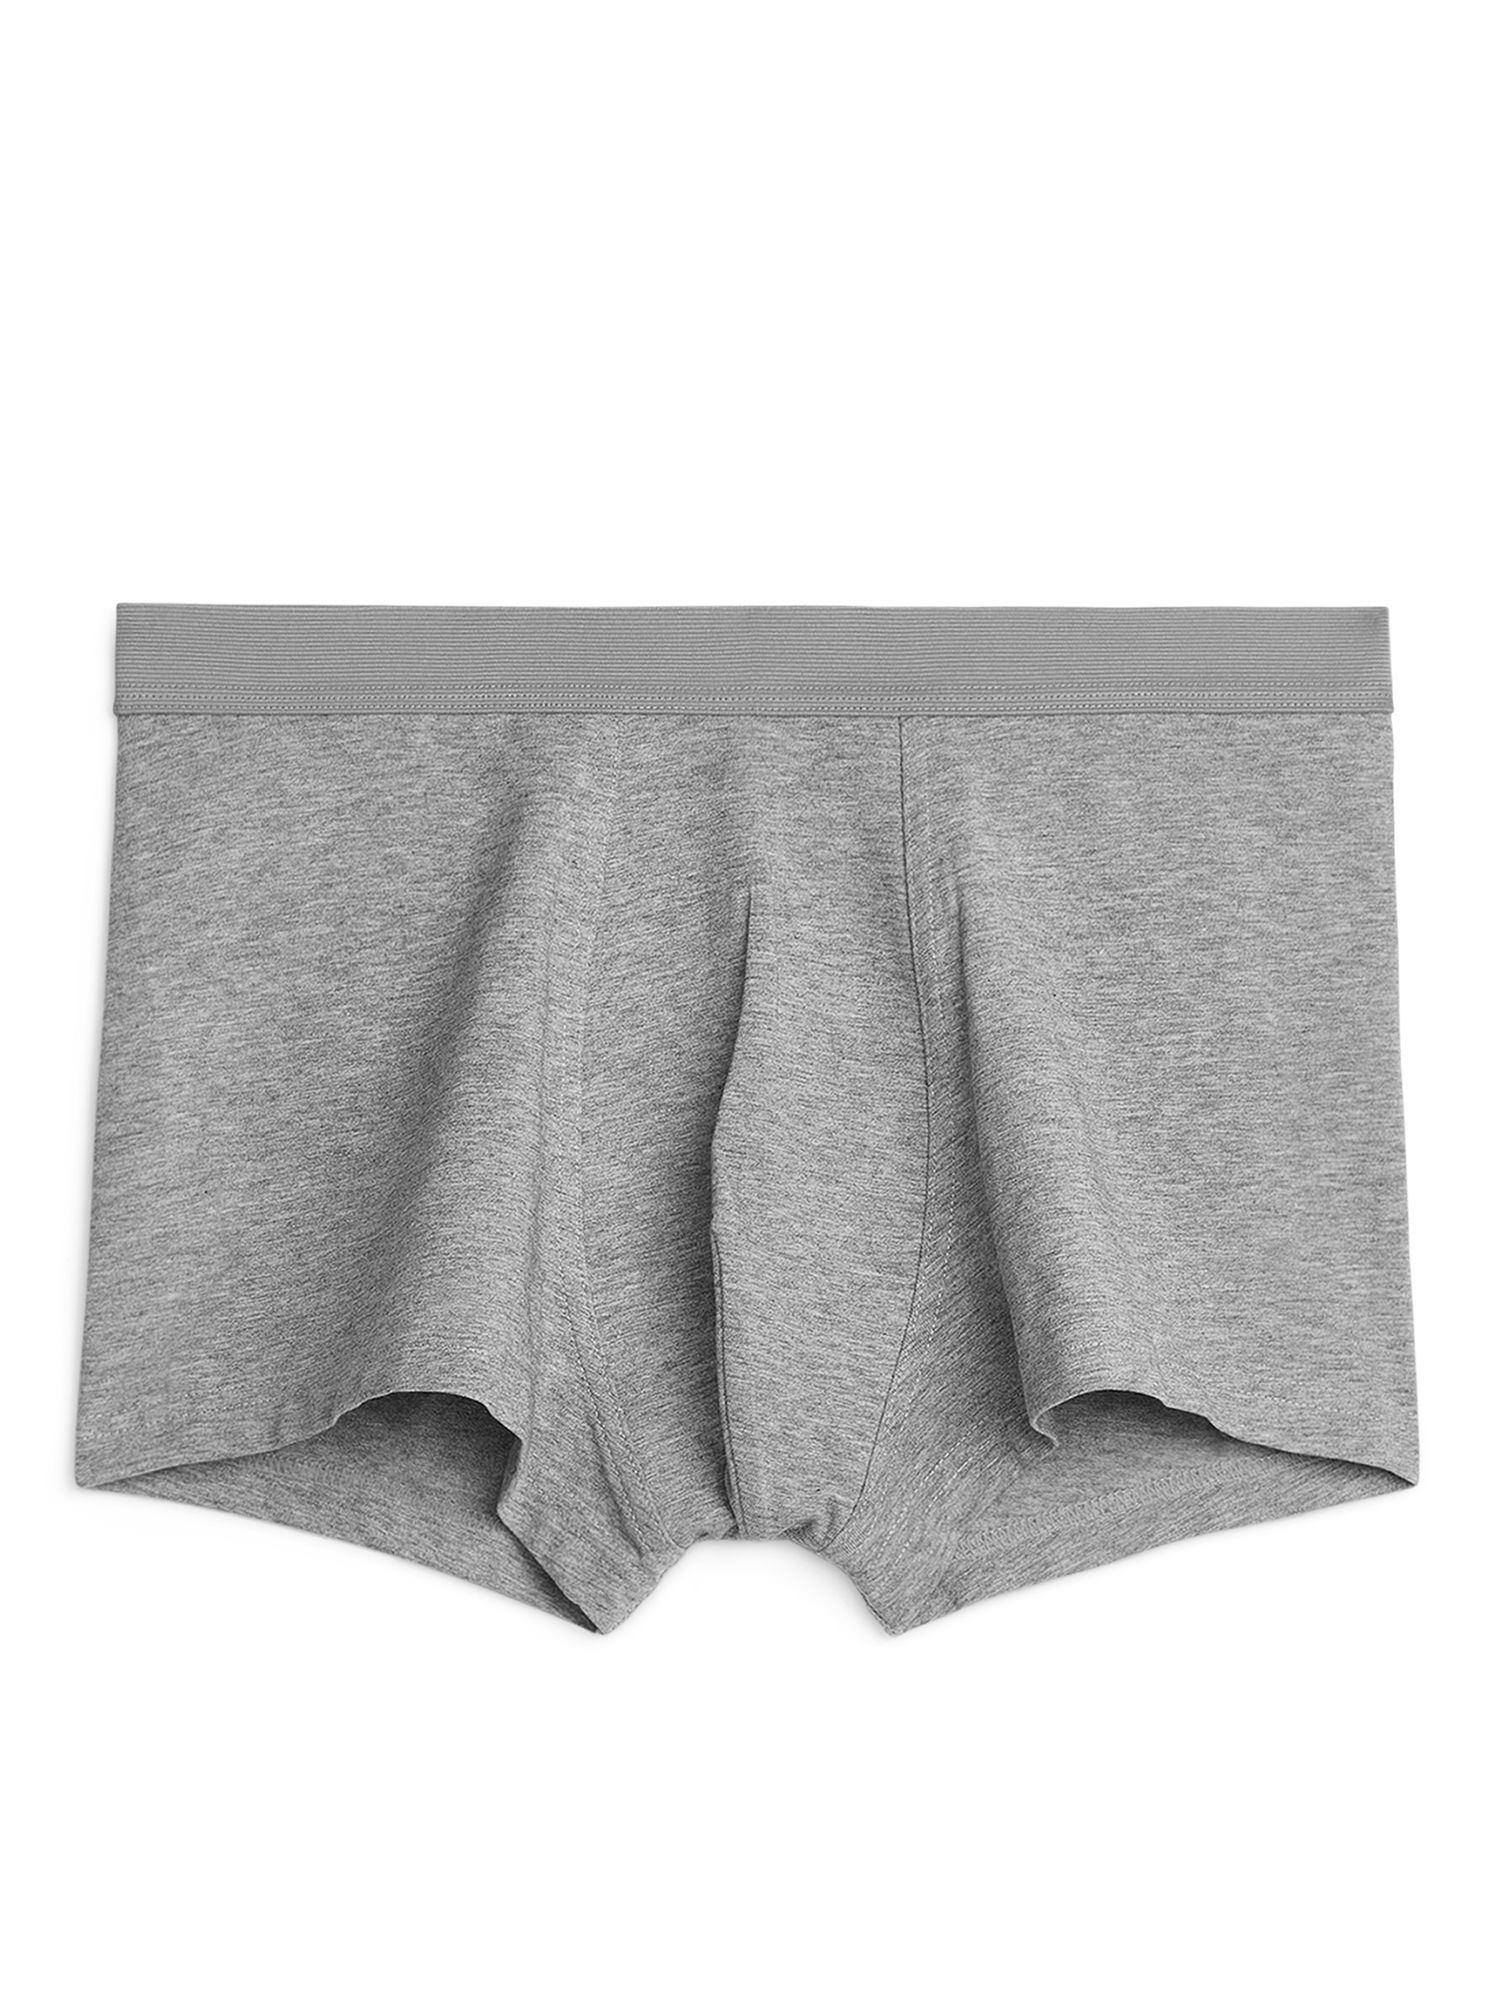 Fabric Swatch image of Arket pima cotton trunks in grey